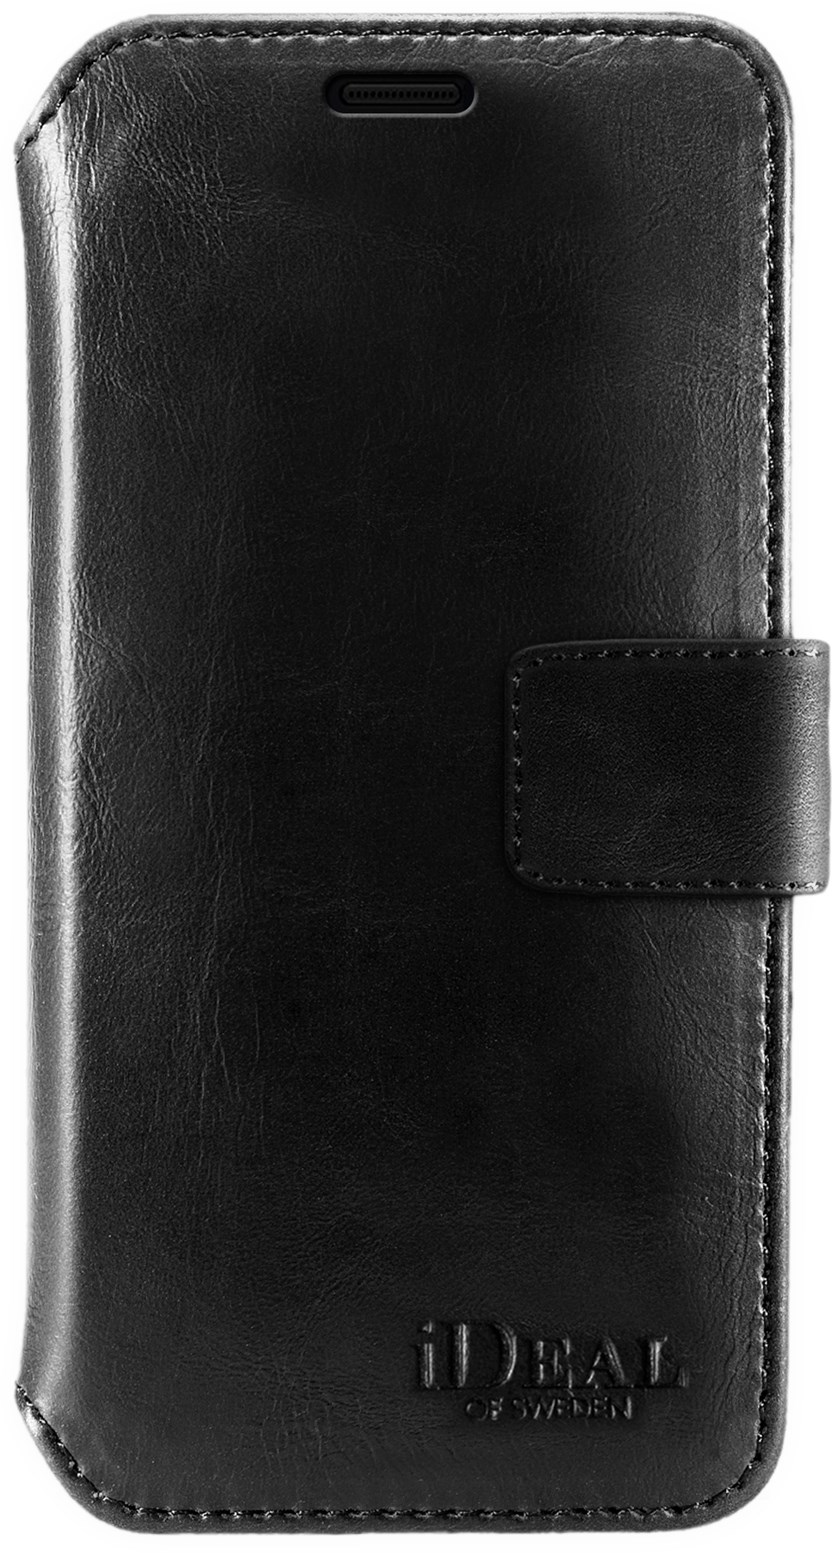 iDeal of Sweden Ideal Sthlm Wallet Huawei P30 Black